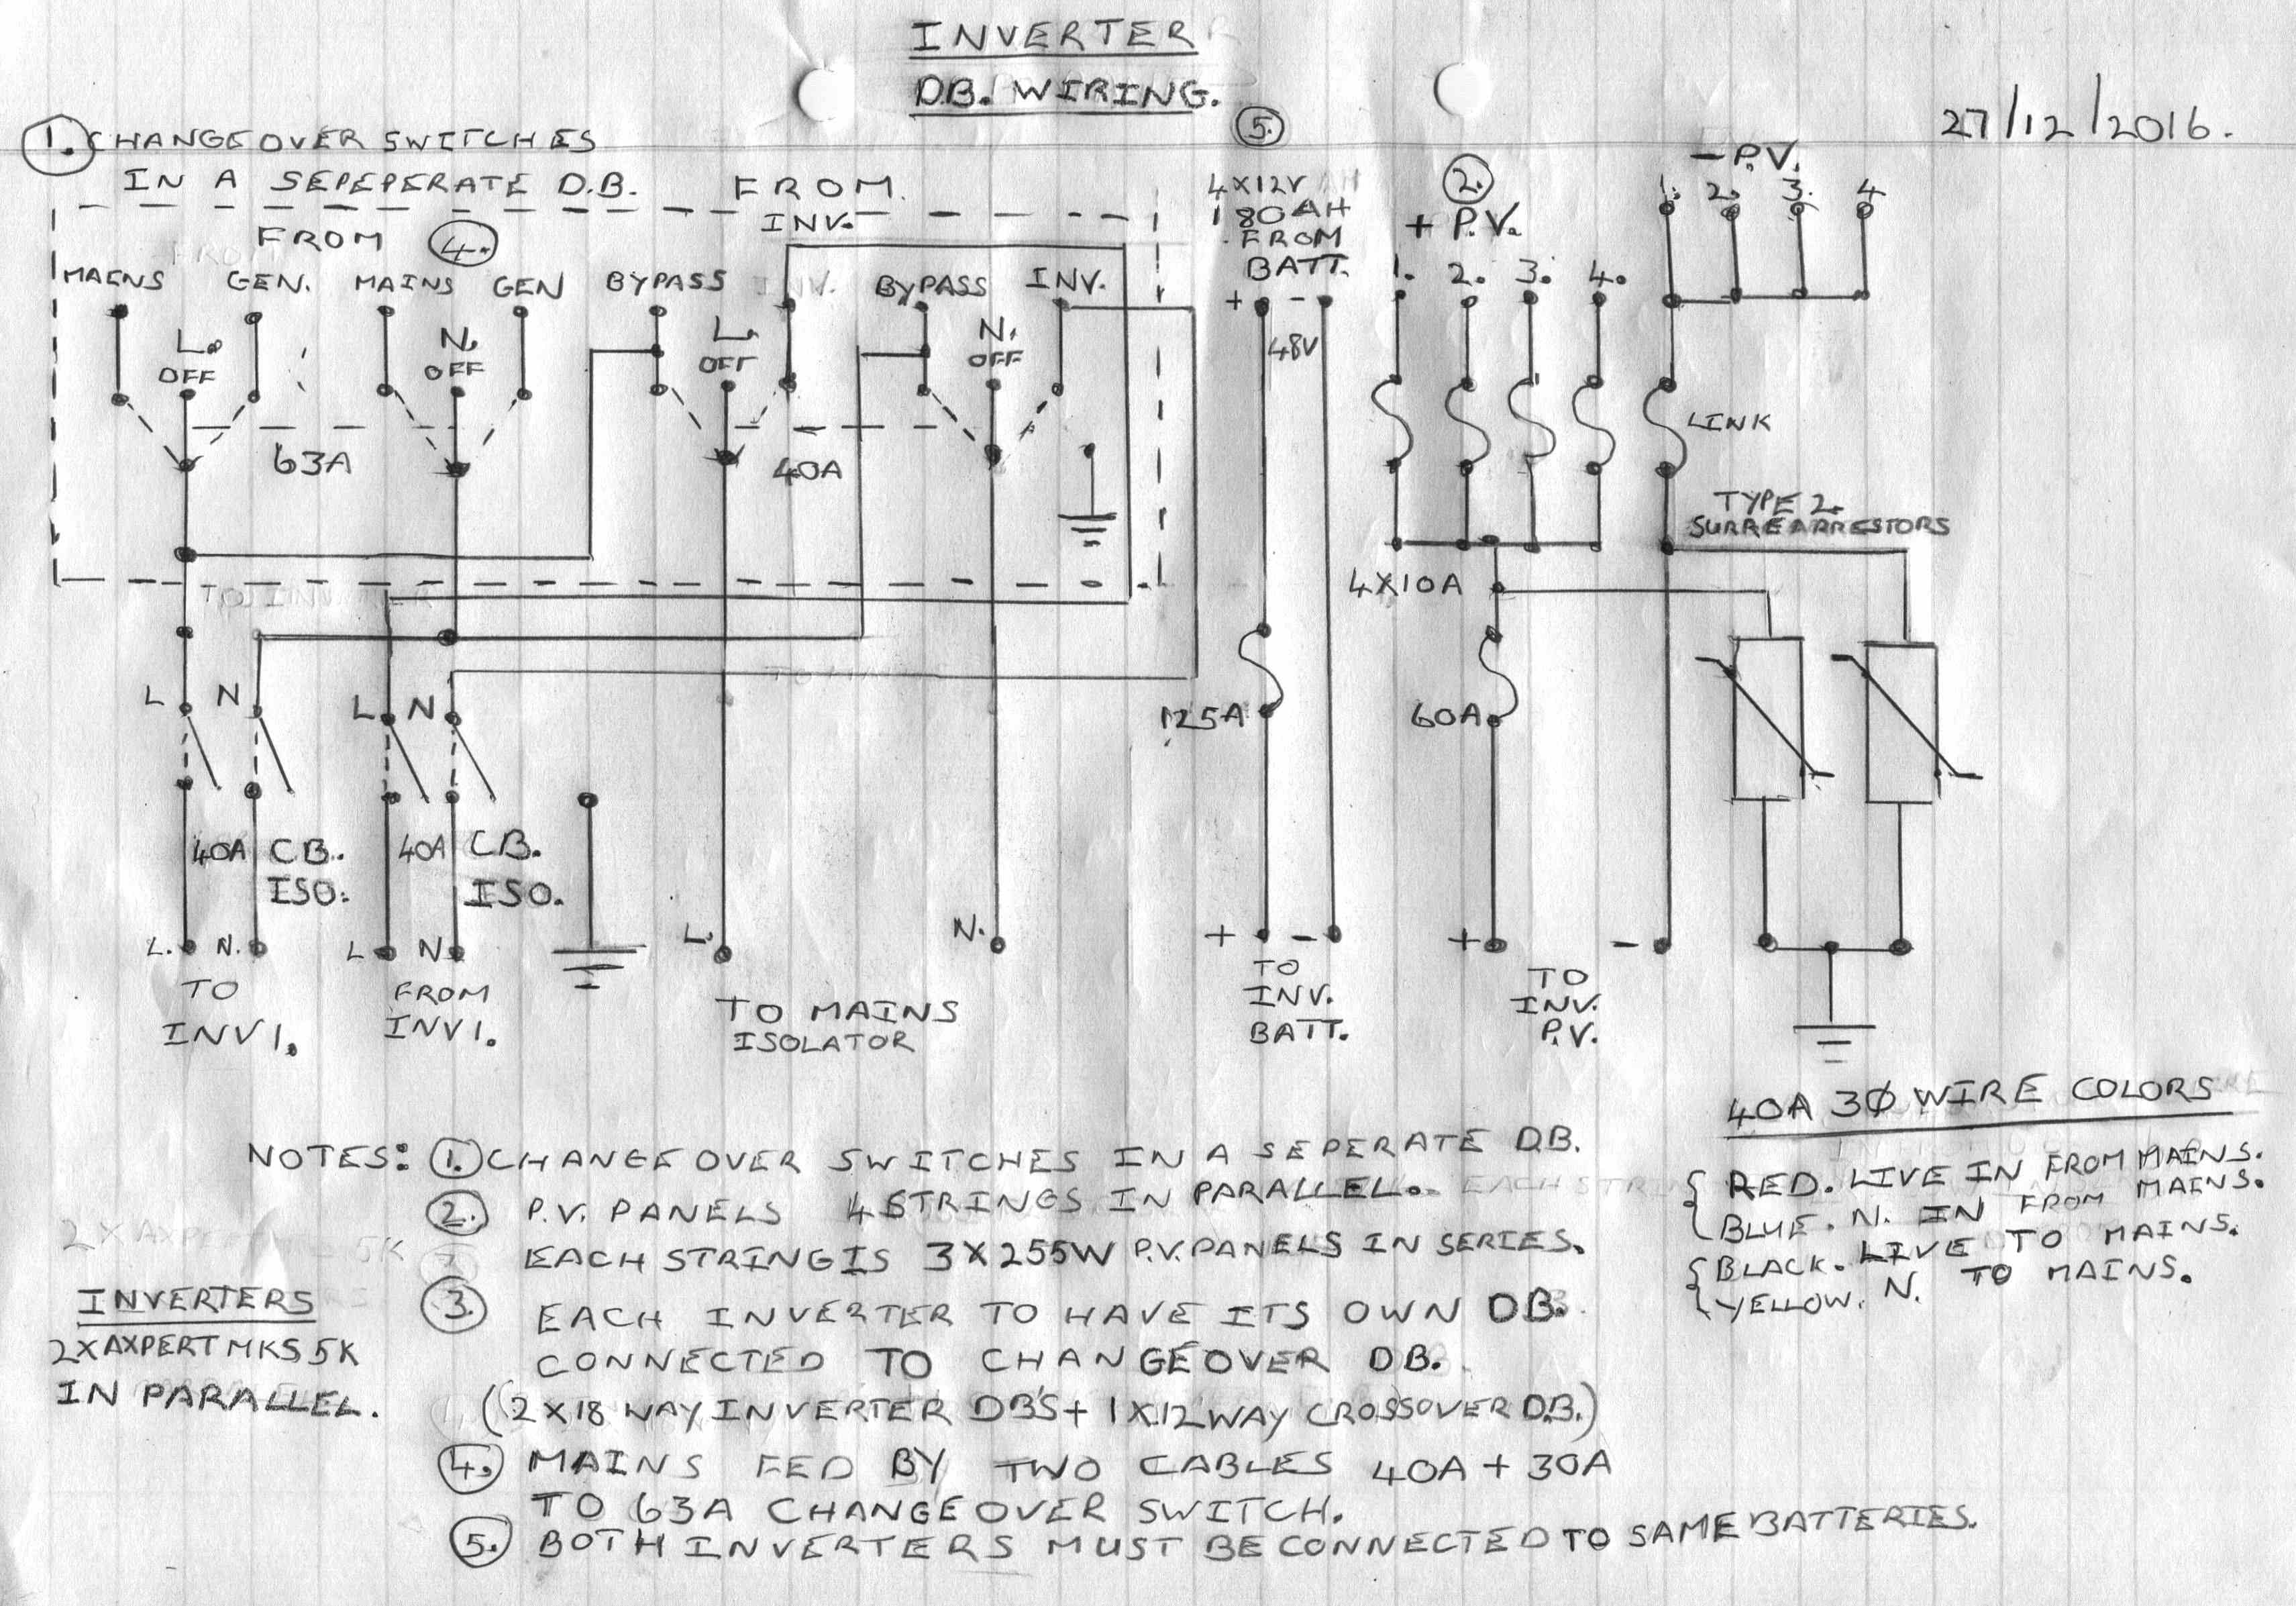 Maxresdefault as well D T Crd Glow Plug Fuse Blows Untitled as well Diagram in addition D Wire Start Generator Conversion G W likewise Reverb. on inverter wiring diagram